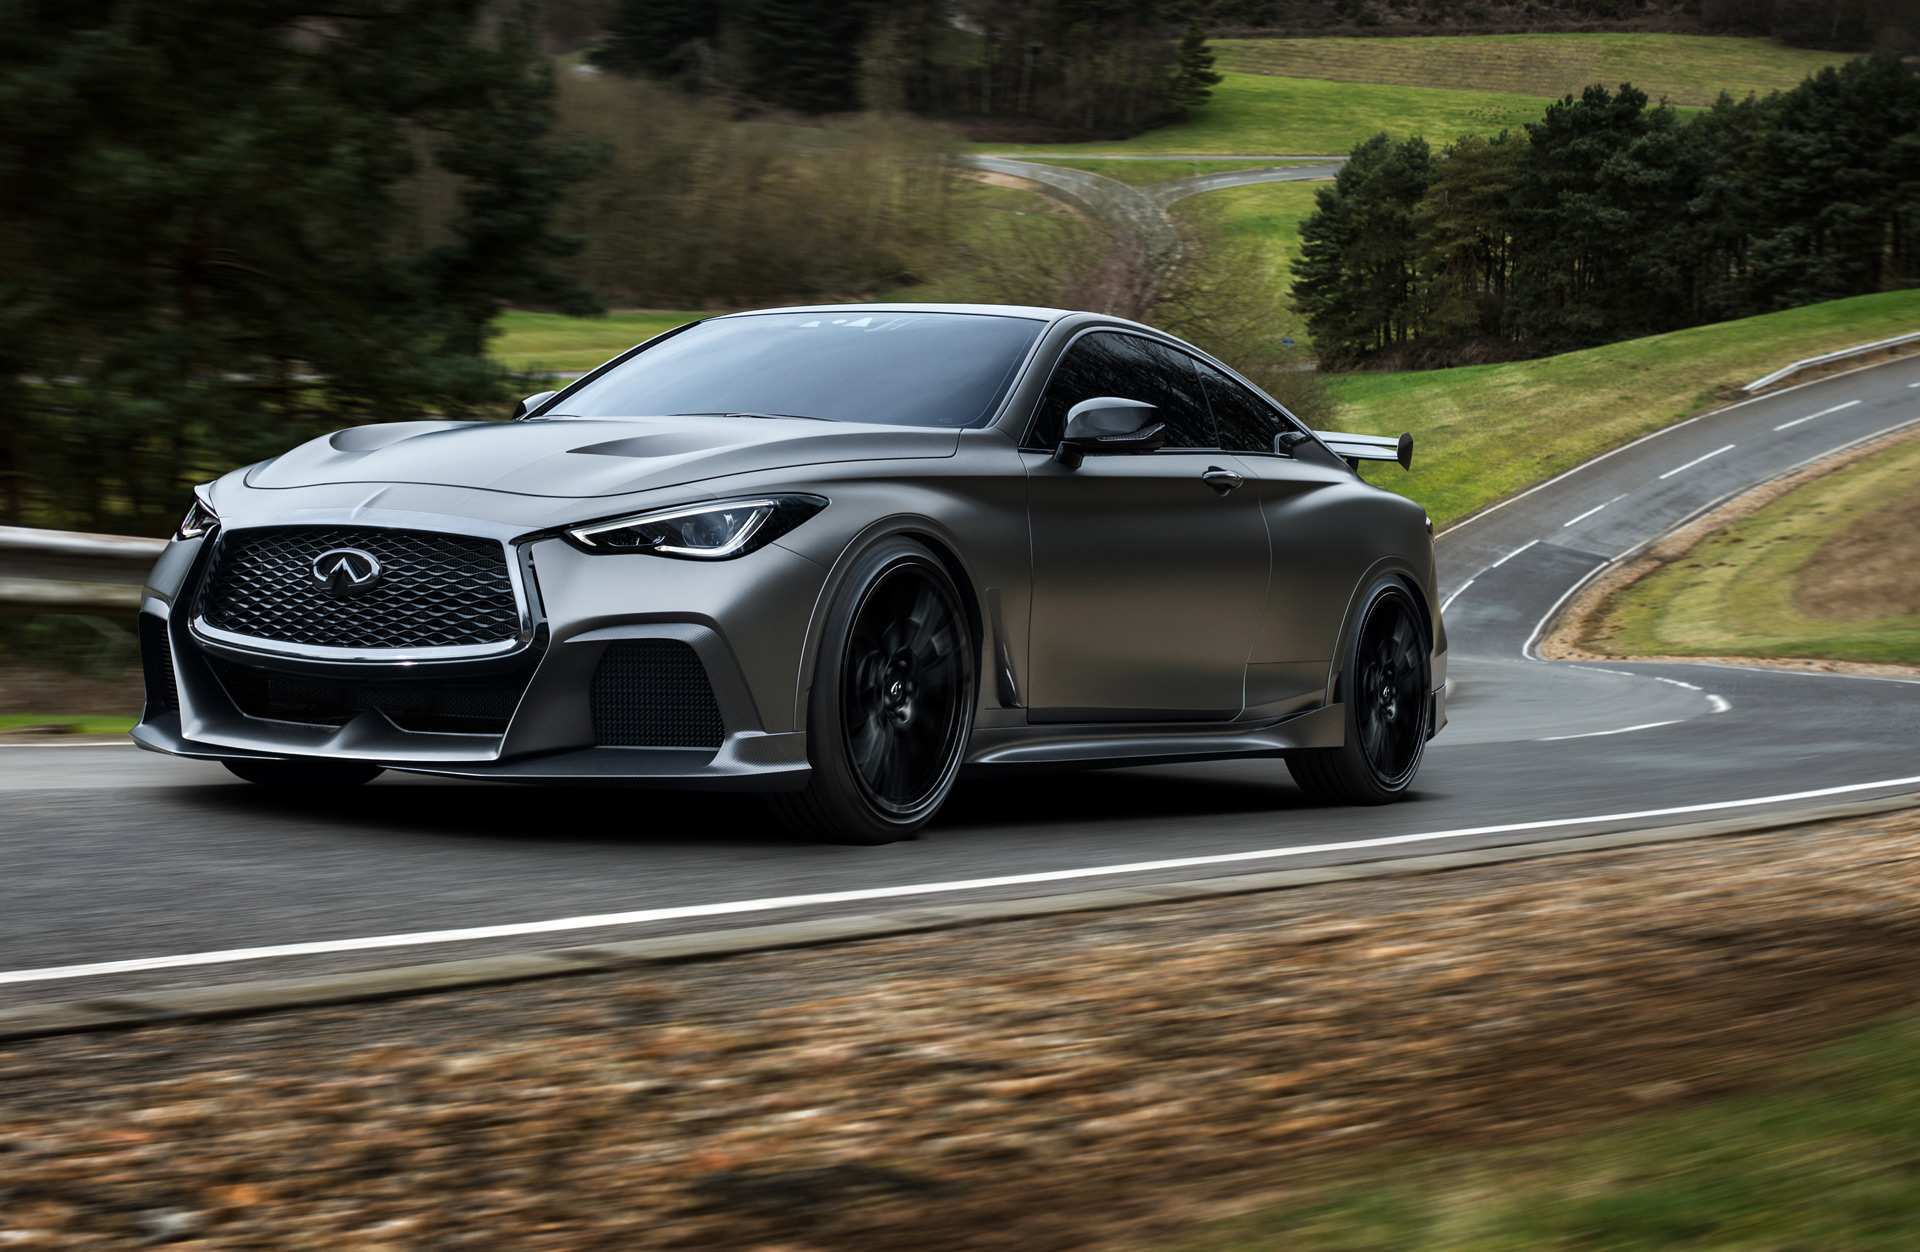 21 New Infiniti Cars 2020 Engine for Infiniti Cars 2020